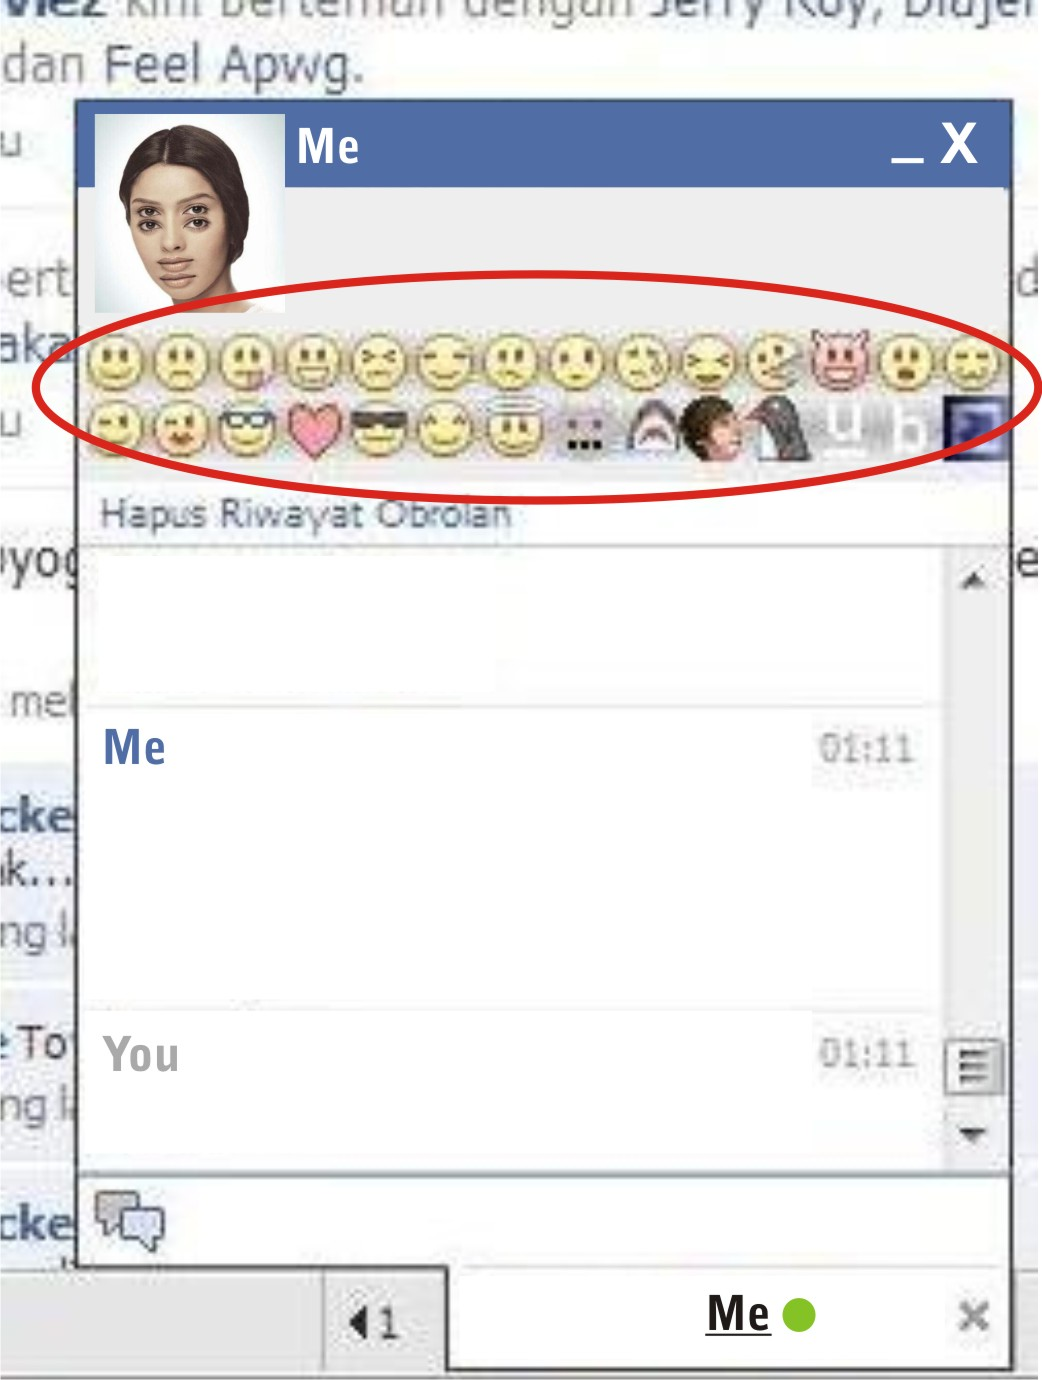 Kode emoticon di chat fb